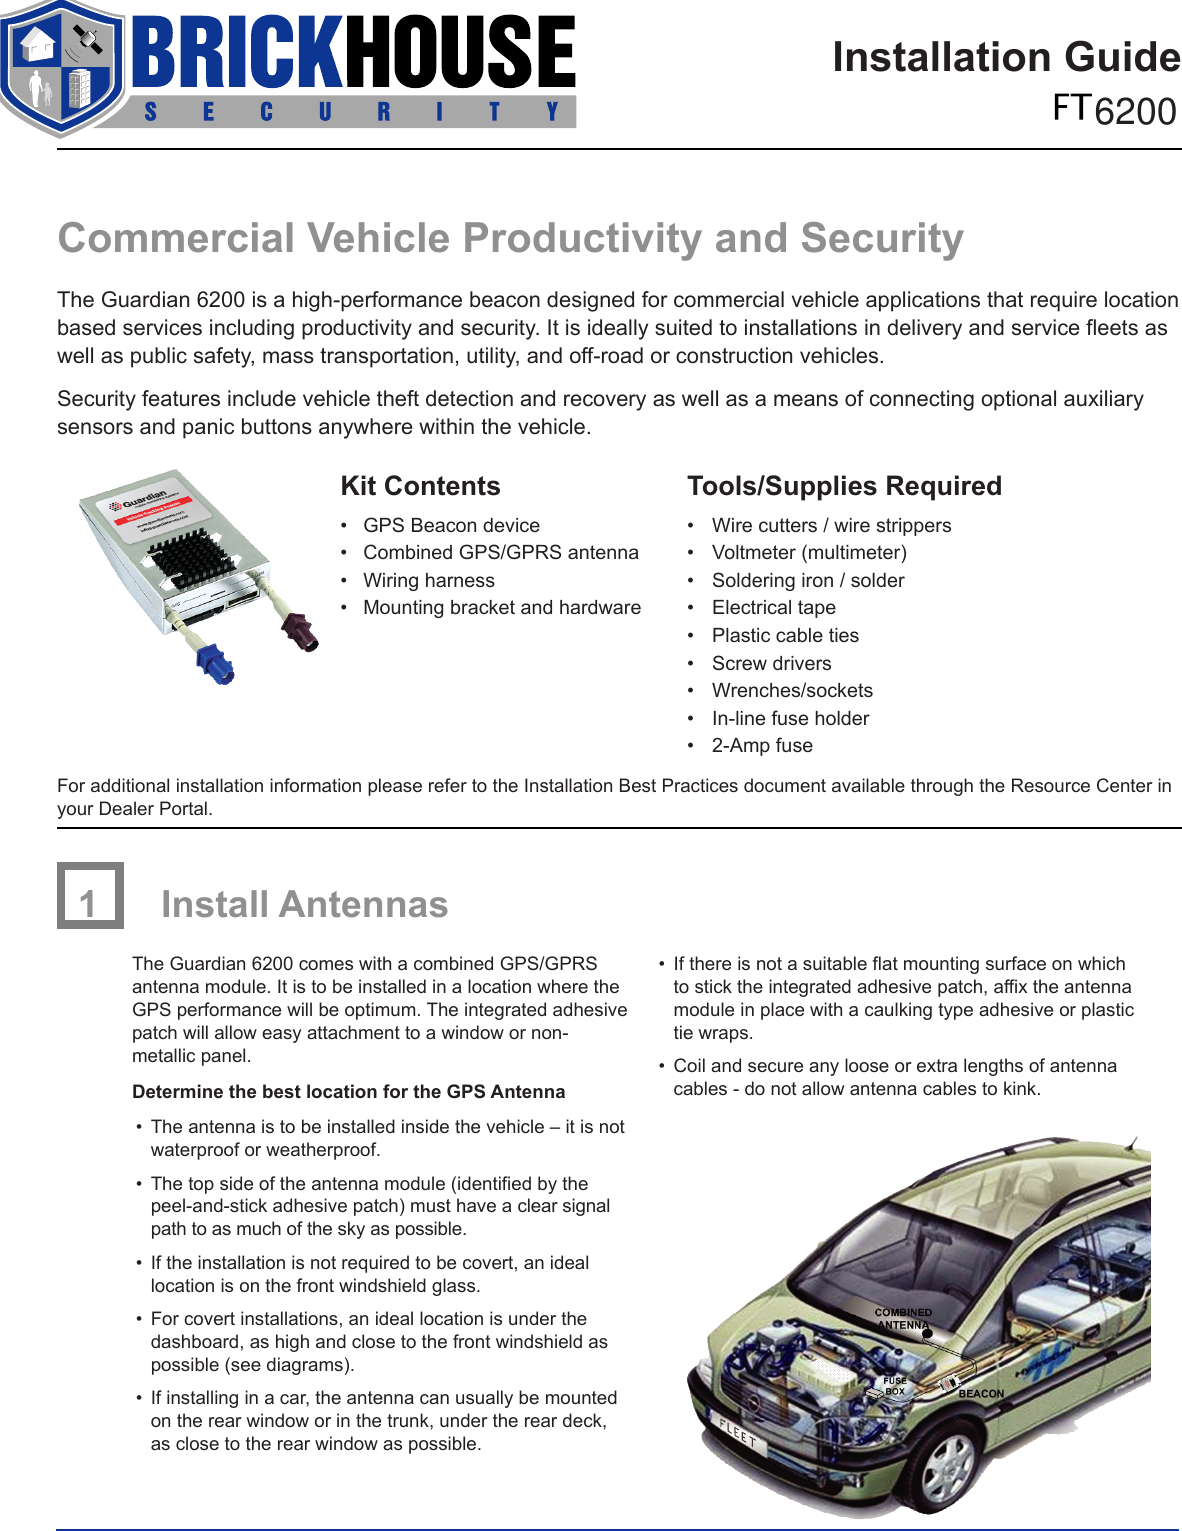 Brickhouse Security Automobile Alarm Ft 6200 Users Manual  GMMS_InstallationGuide_6200